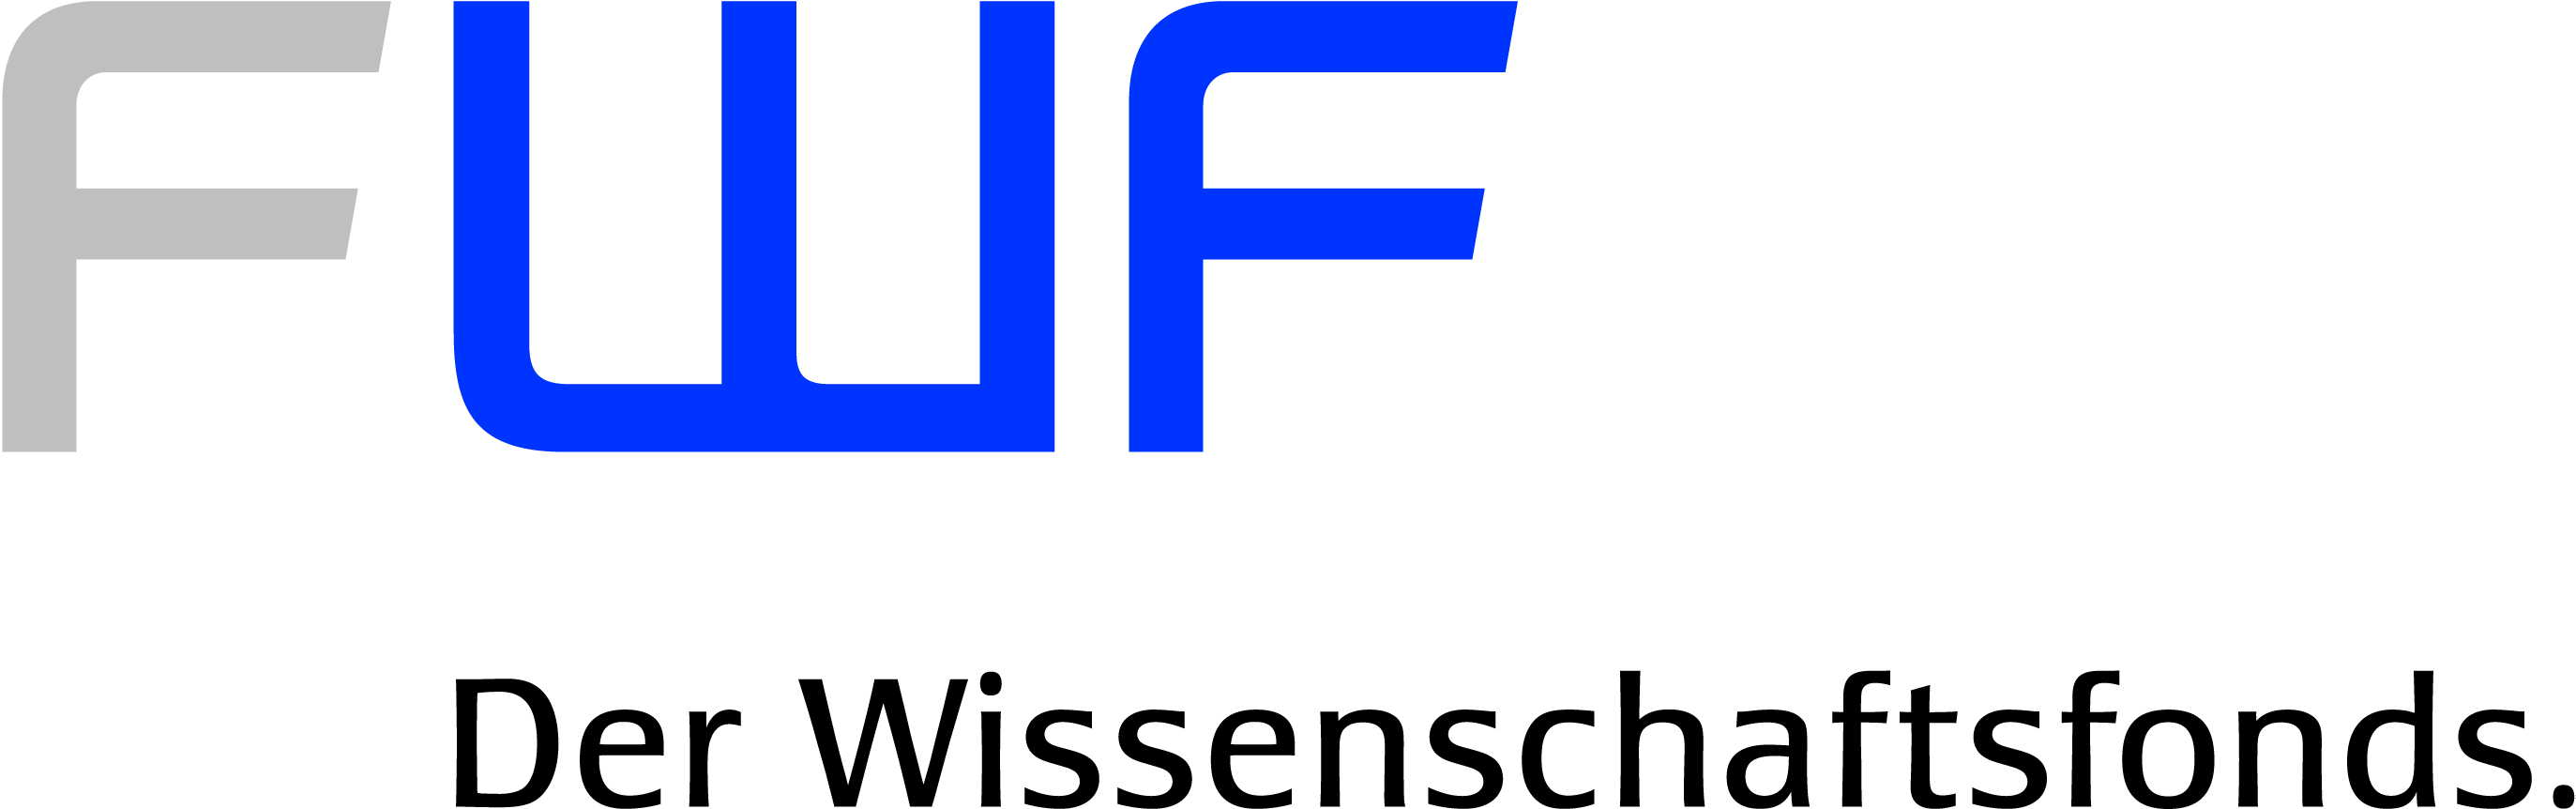 https://www.fwf.ac.at/fileadmin/files/Images/News_Presse/Presse/Logo/fwf-logo_var2.jpg